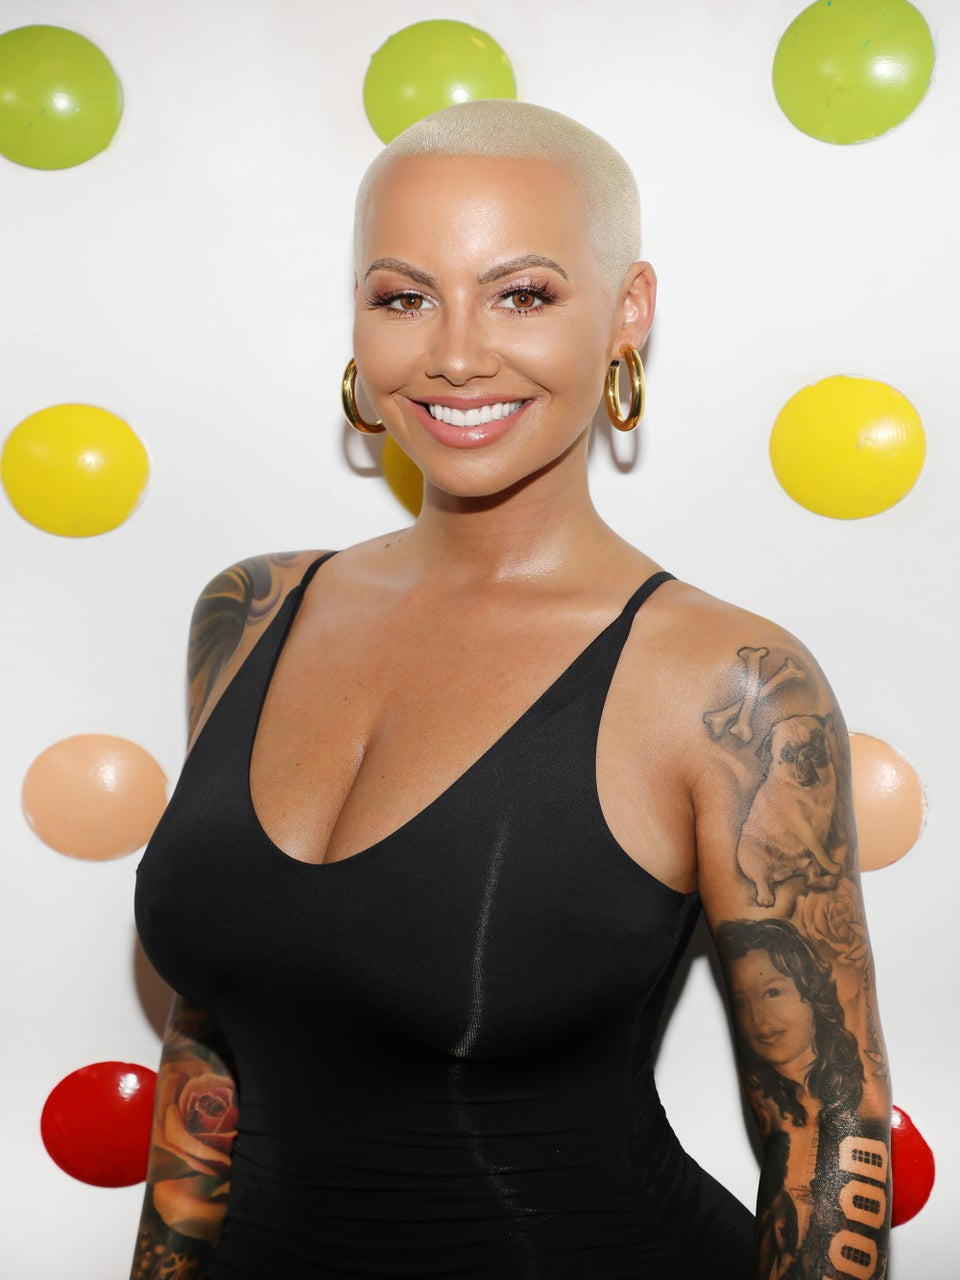 Amber Rose Believes Black Women And The LGBTQ Community Are Being Left Out Of The #MeToo Movement